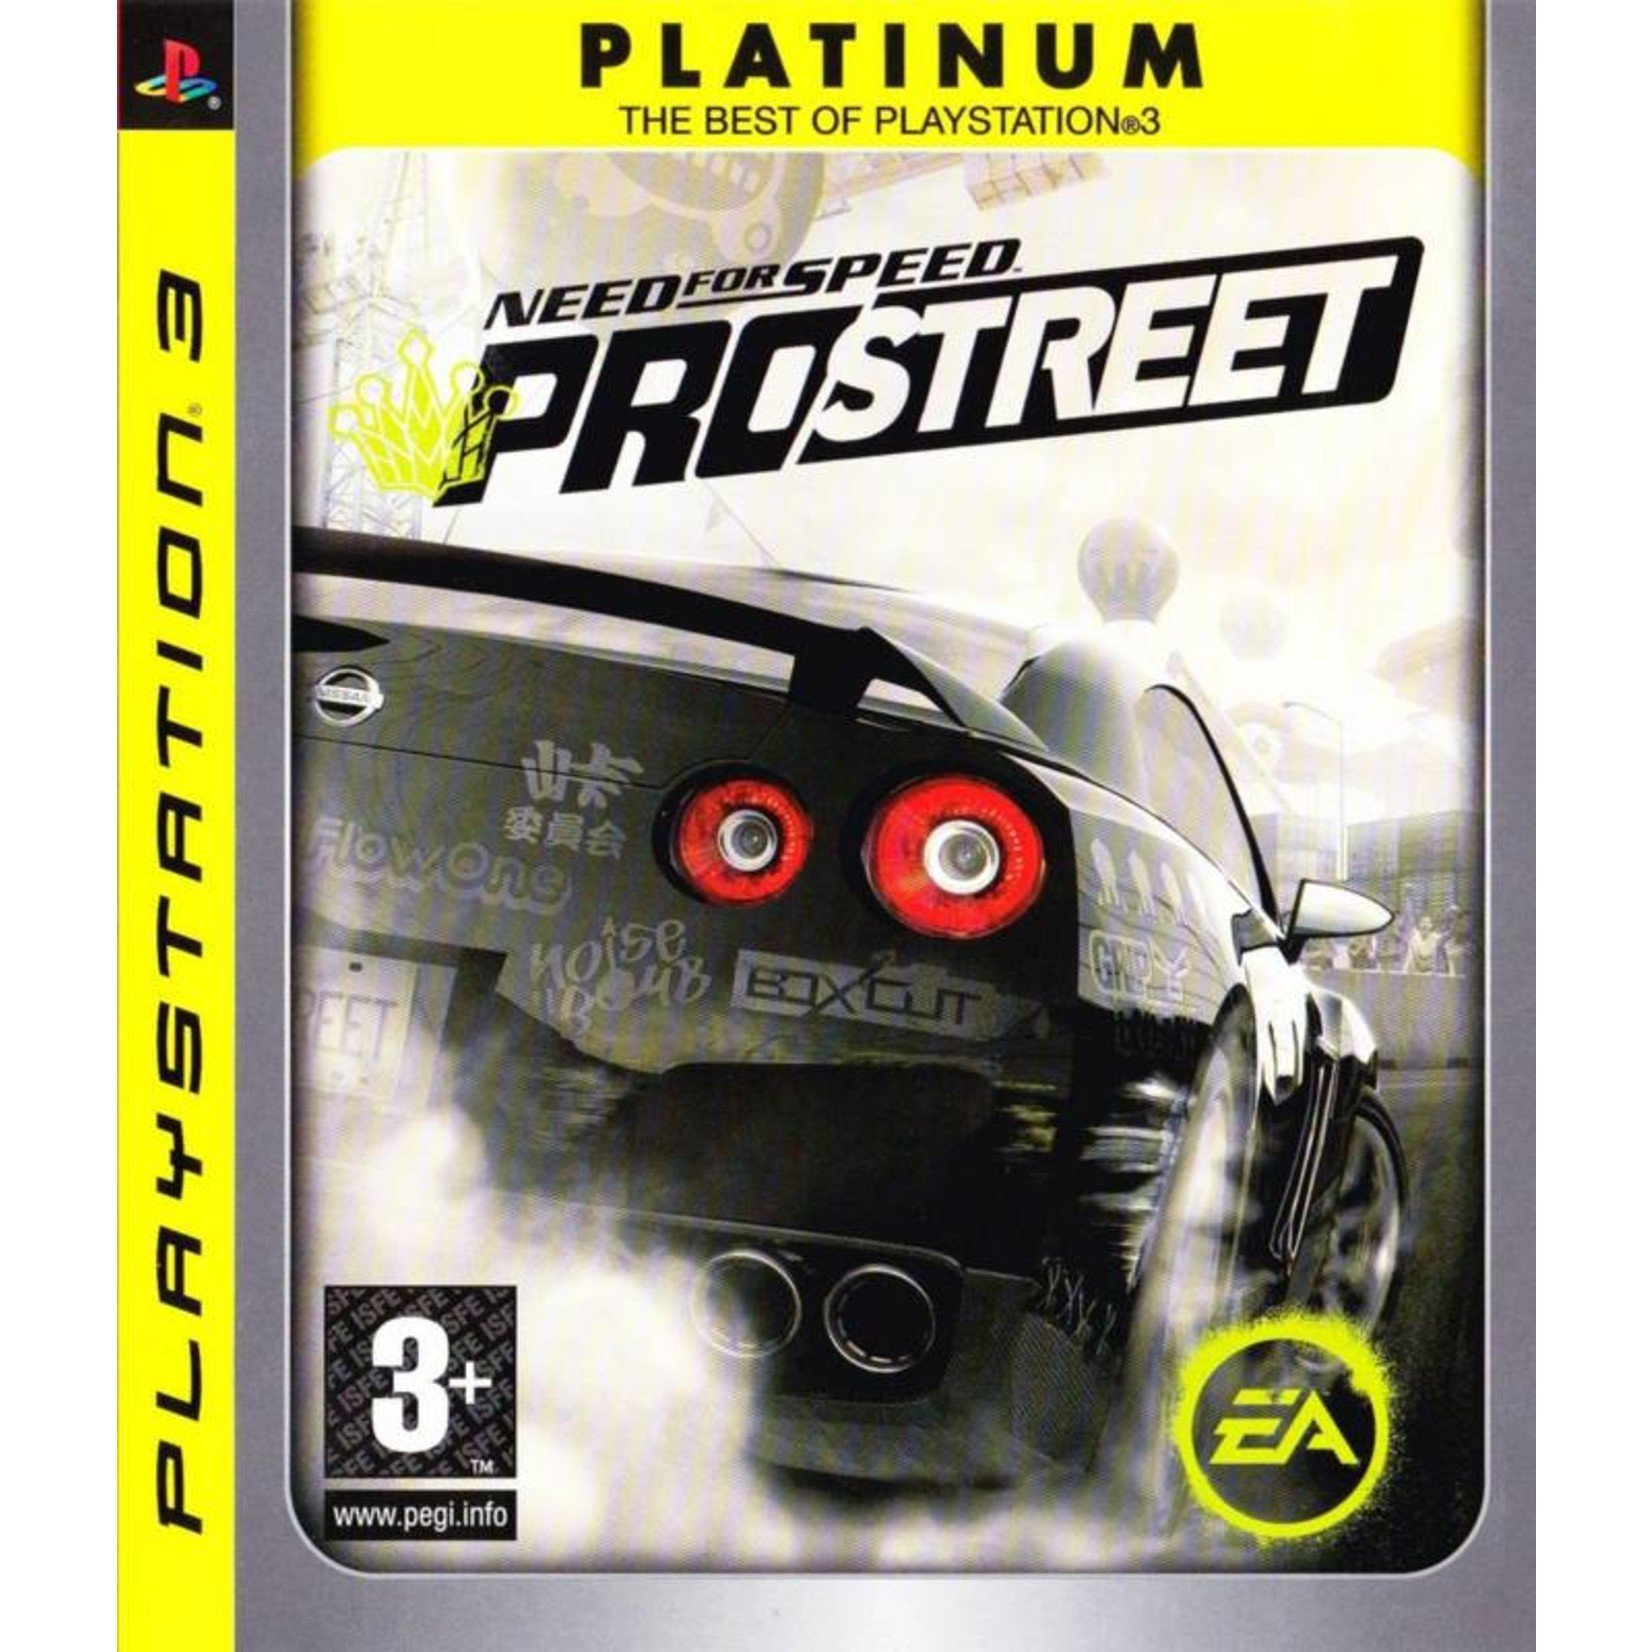 Need For Speed - Prostreet (Platinum)